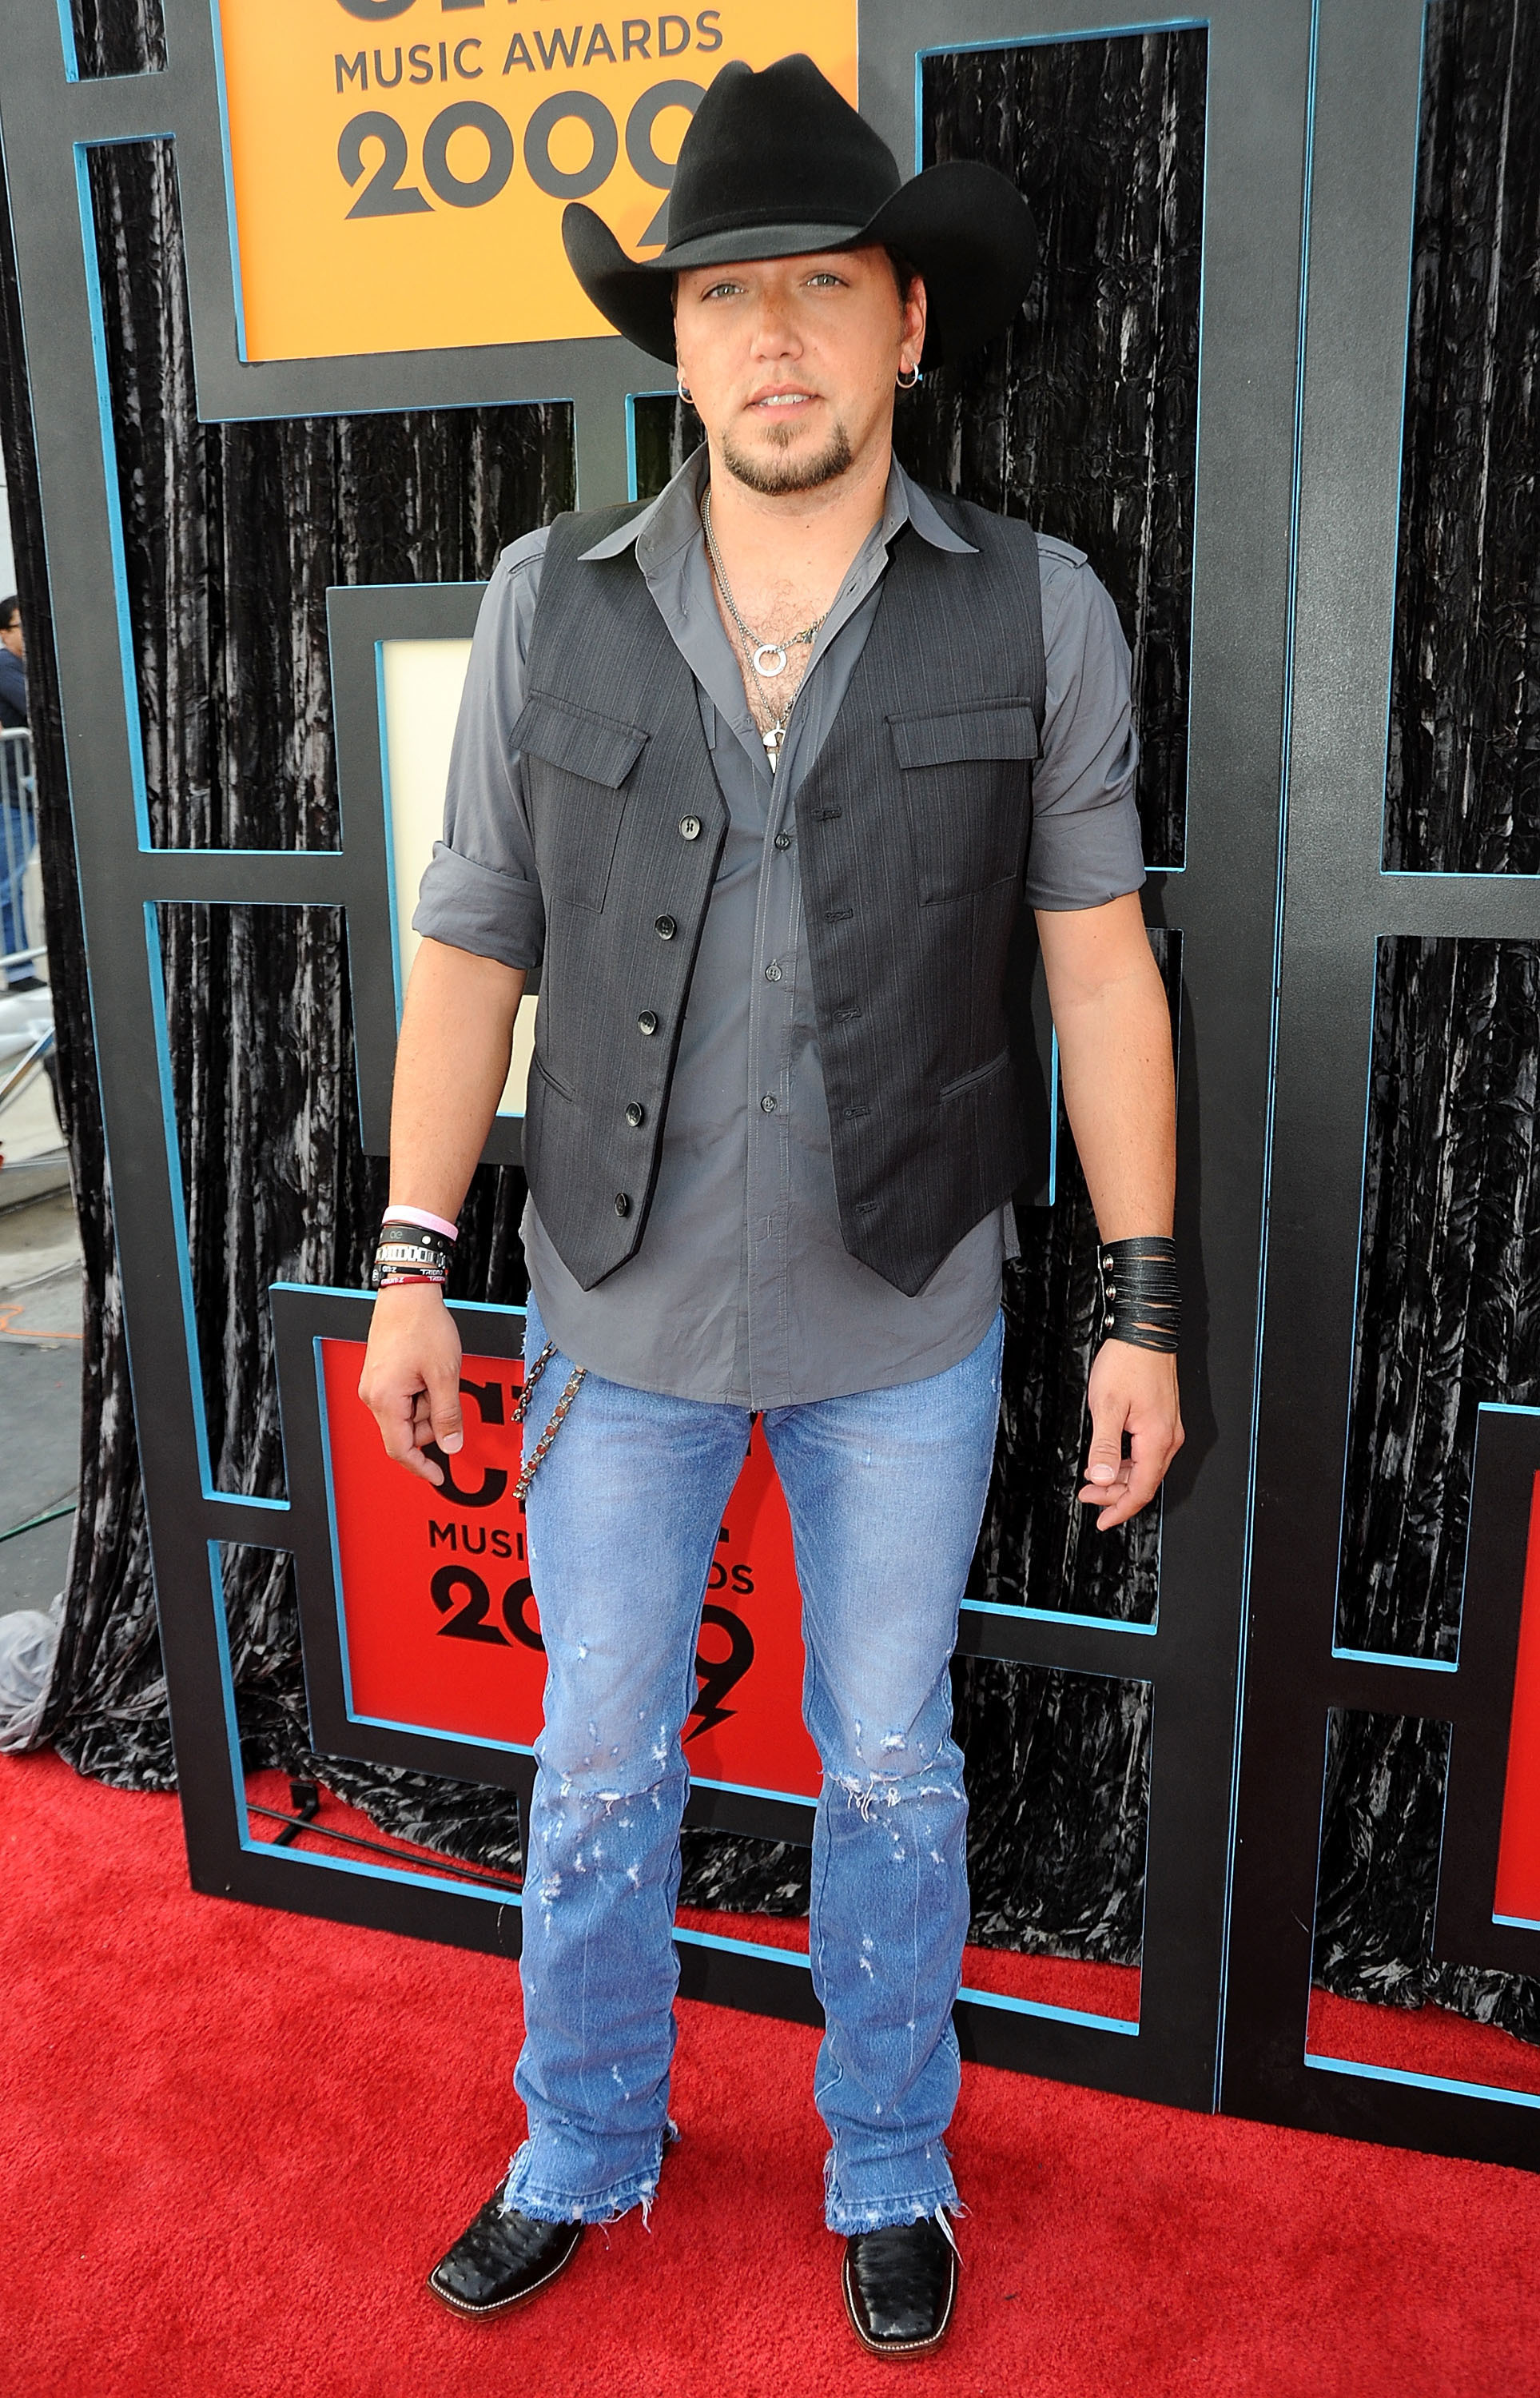 Jason Aldean attends the CMT Music Awards at the Sommet Center in Nashville, Tennessee, on June 16, 2009.